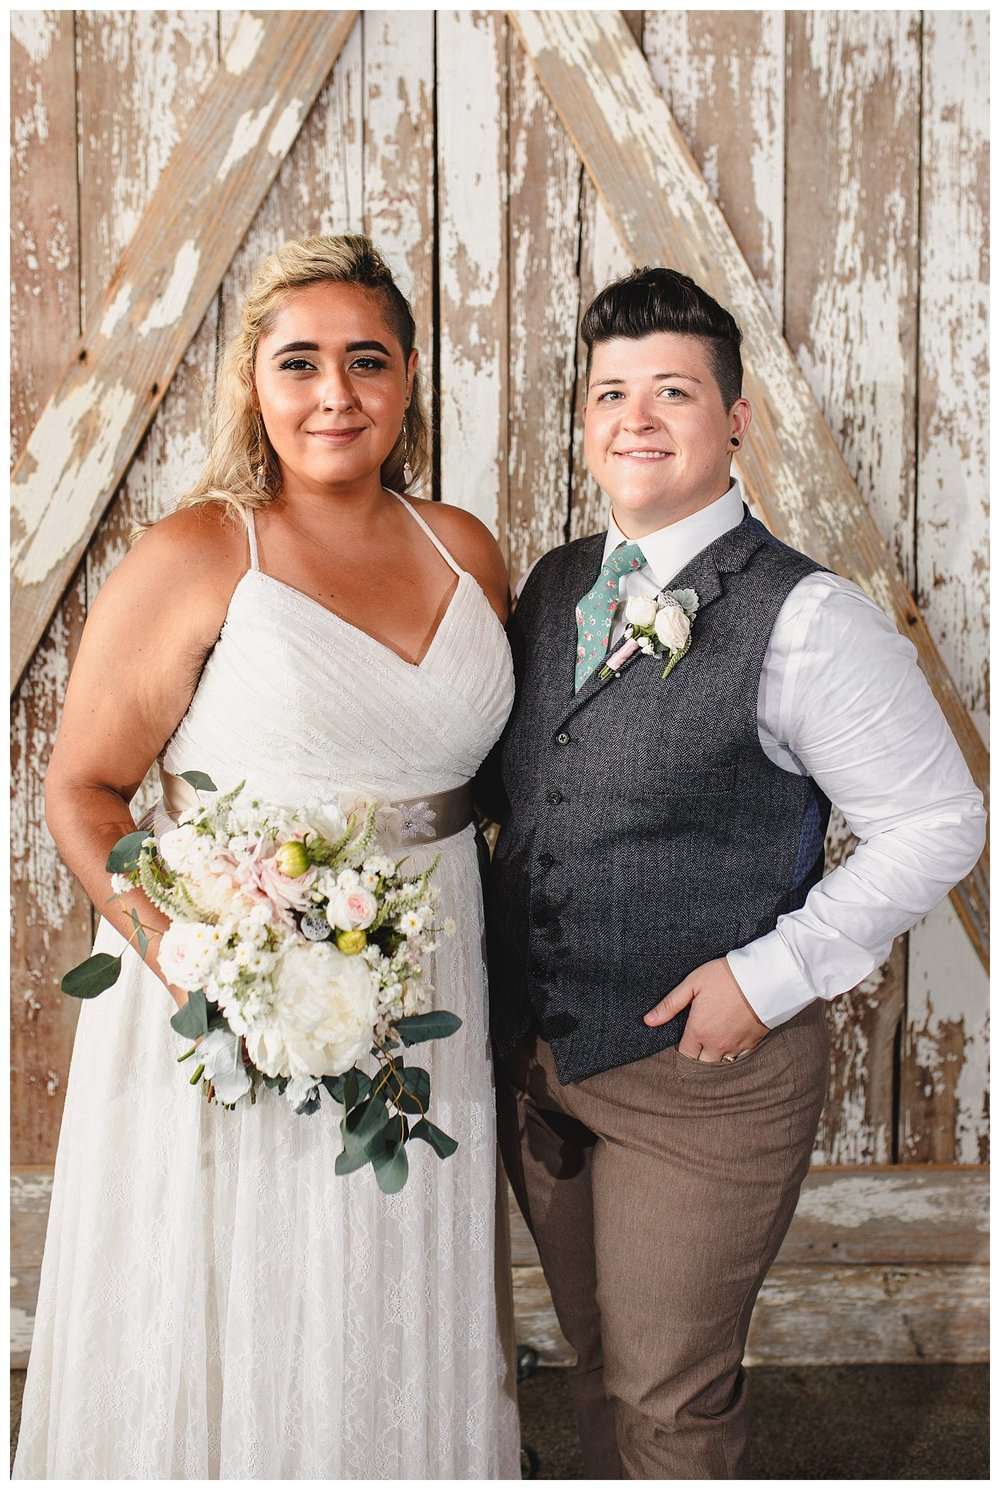 Kelsey_Diane_Photography_The_Vow_Exchange_Kansas_City_LGBT_Friendly_Wedding_Photographer_Kansas_City_Scout_Ica_0742.jpg